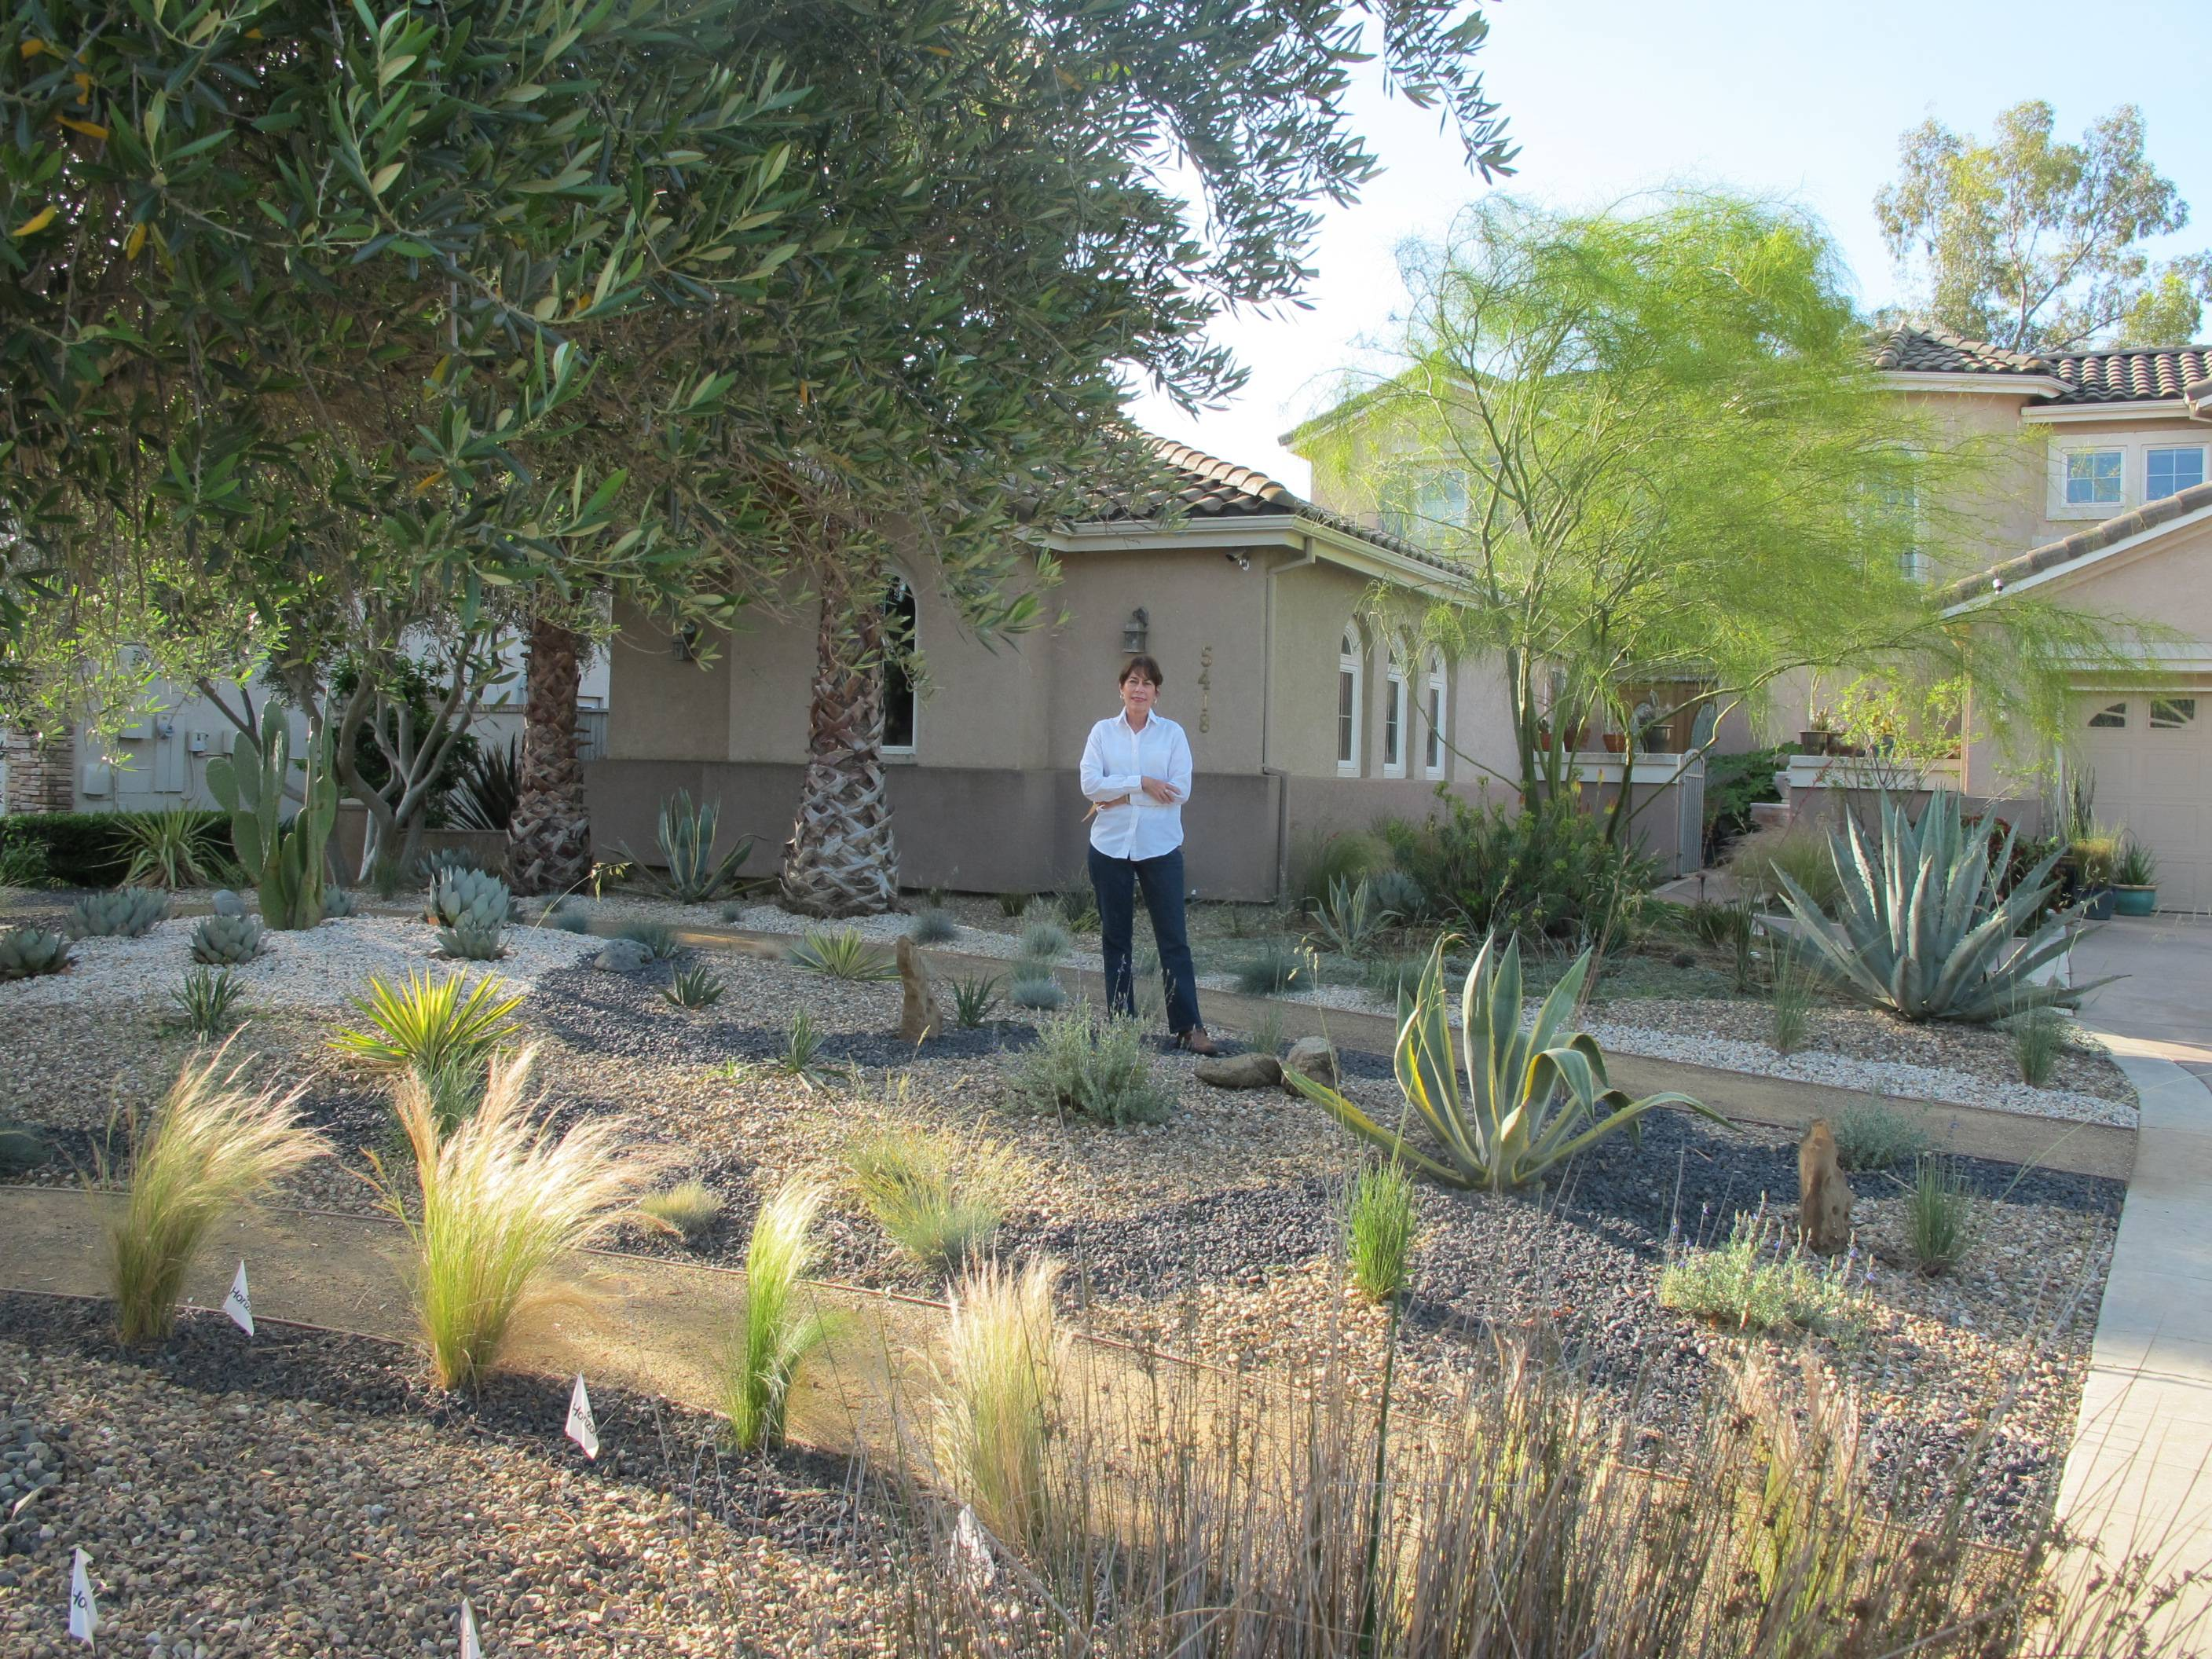 Ann Savageau, a design professor at the University of California at Davis, installed a new landscape consisting of a variety of cacti and agaves, fescues, sages, and grasses that have not fully grown in yet. Above, right, the home in Davis, Calif., used to have a typical Kentucky bluegrass lawn that required a lot of watering, fertilizer and herbicides.